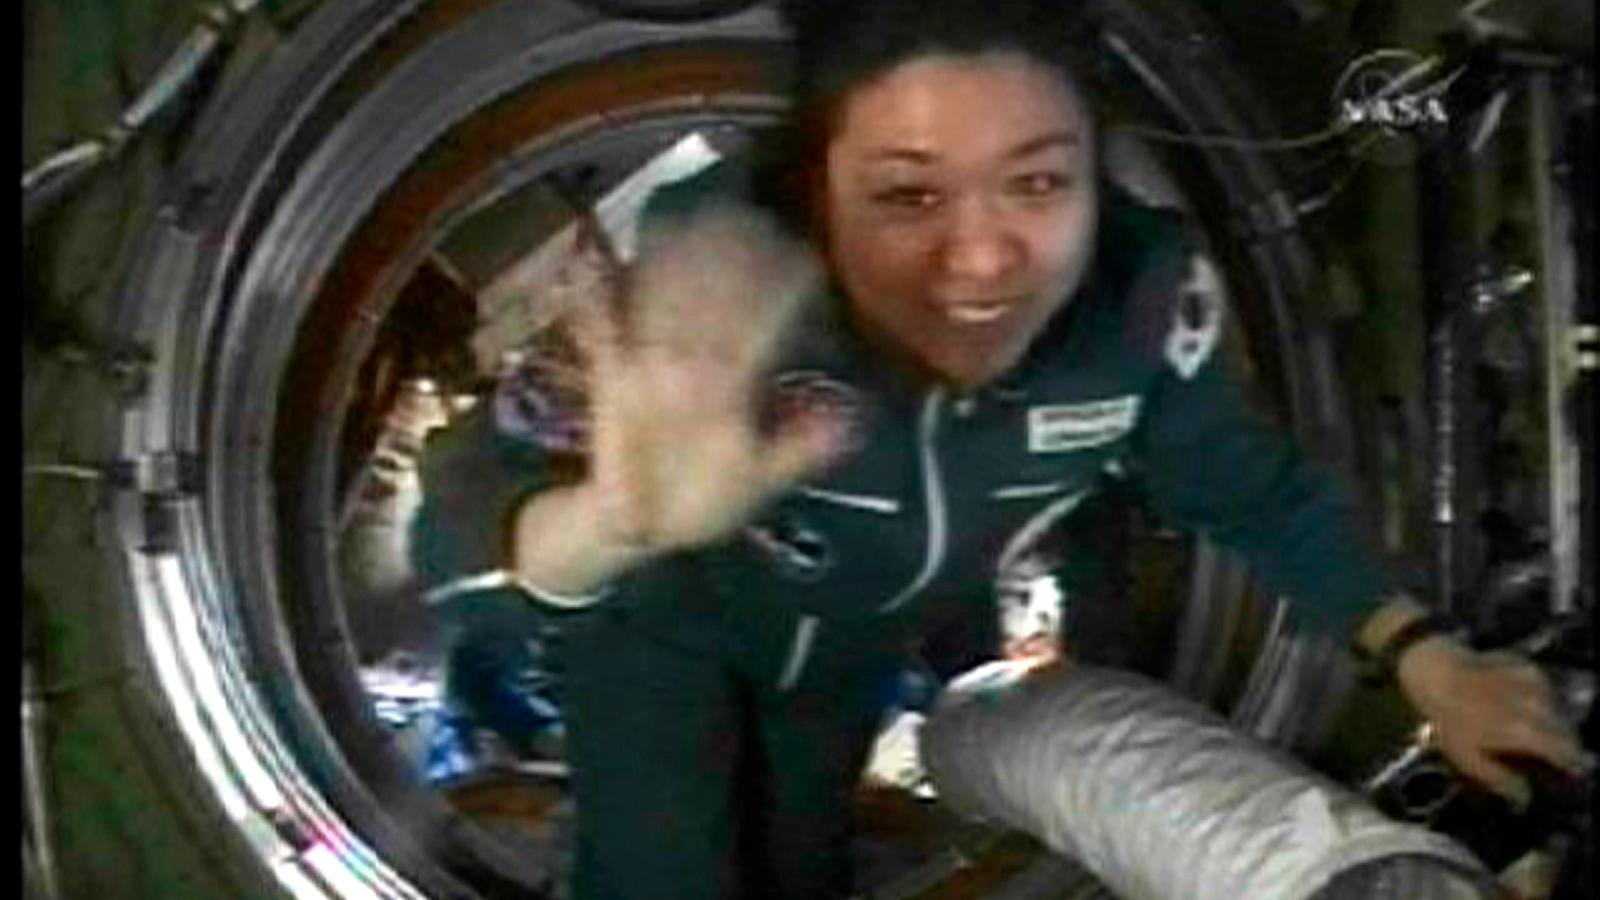 South Korea's first—and only—astronaut just quit her job, ending the